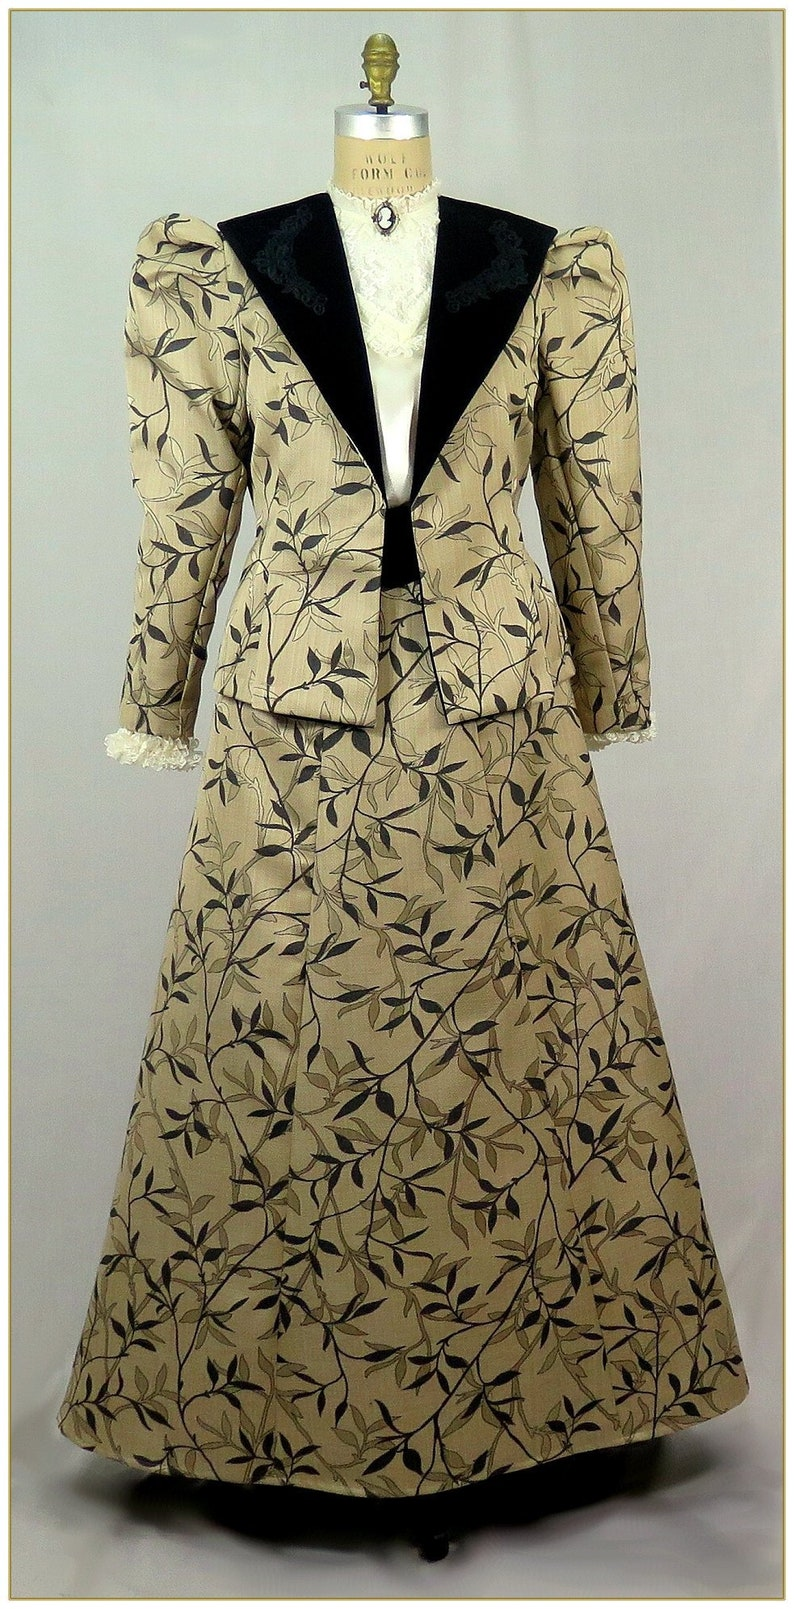 Victorian Skirts | Bustle, Walking, Edwardian Skirts 1900-1910 Edwardian Victorian Leaf and Vine Jacket $92.00 AT vintagedancer.com